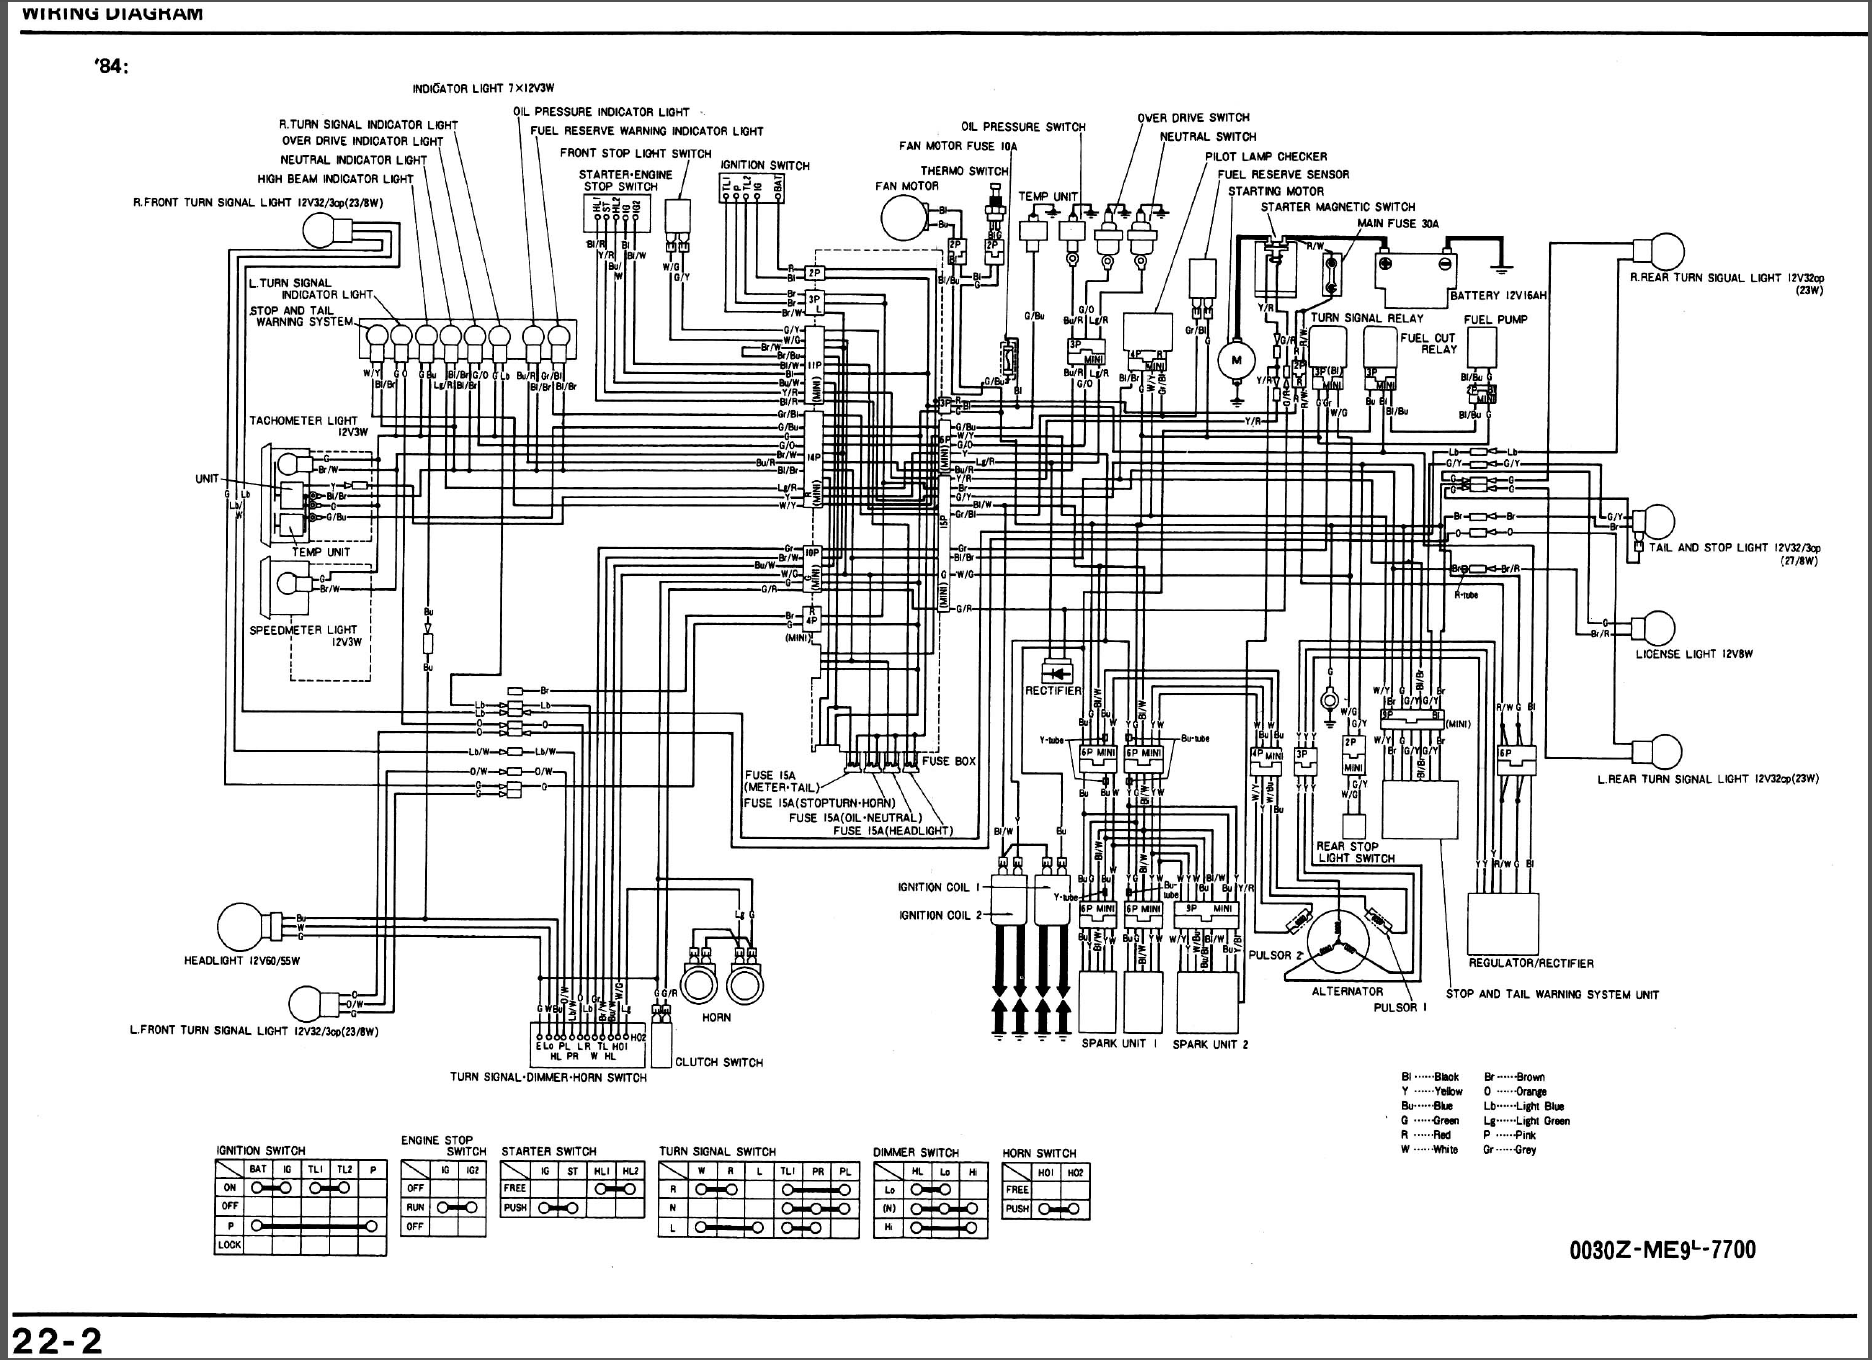 9265d1409799690 1984 honda shadow 700 wireing diagram b 1984 honda shadow 700 Chinese ATV Wiring Diagrams at gsmx.co